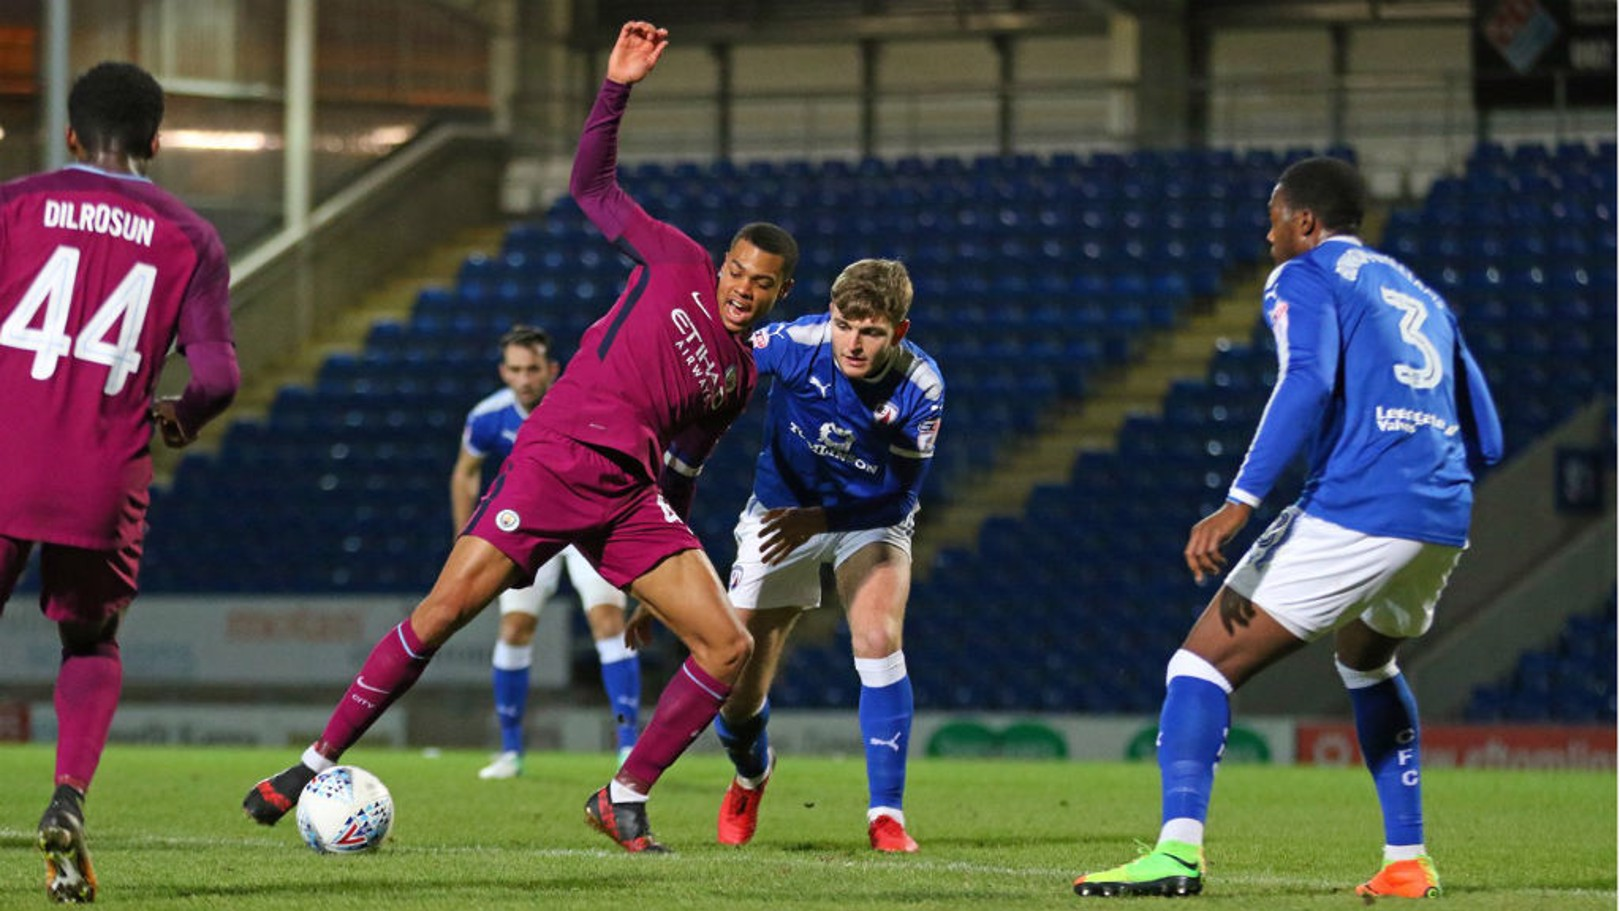 ATTACK: Lukas Nmecha battles a defender against Chesterfield.